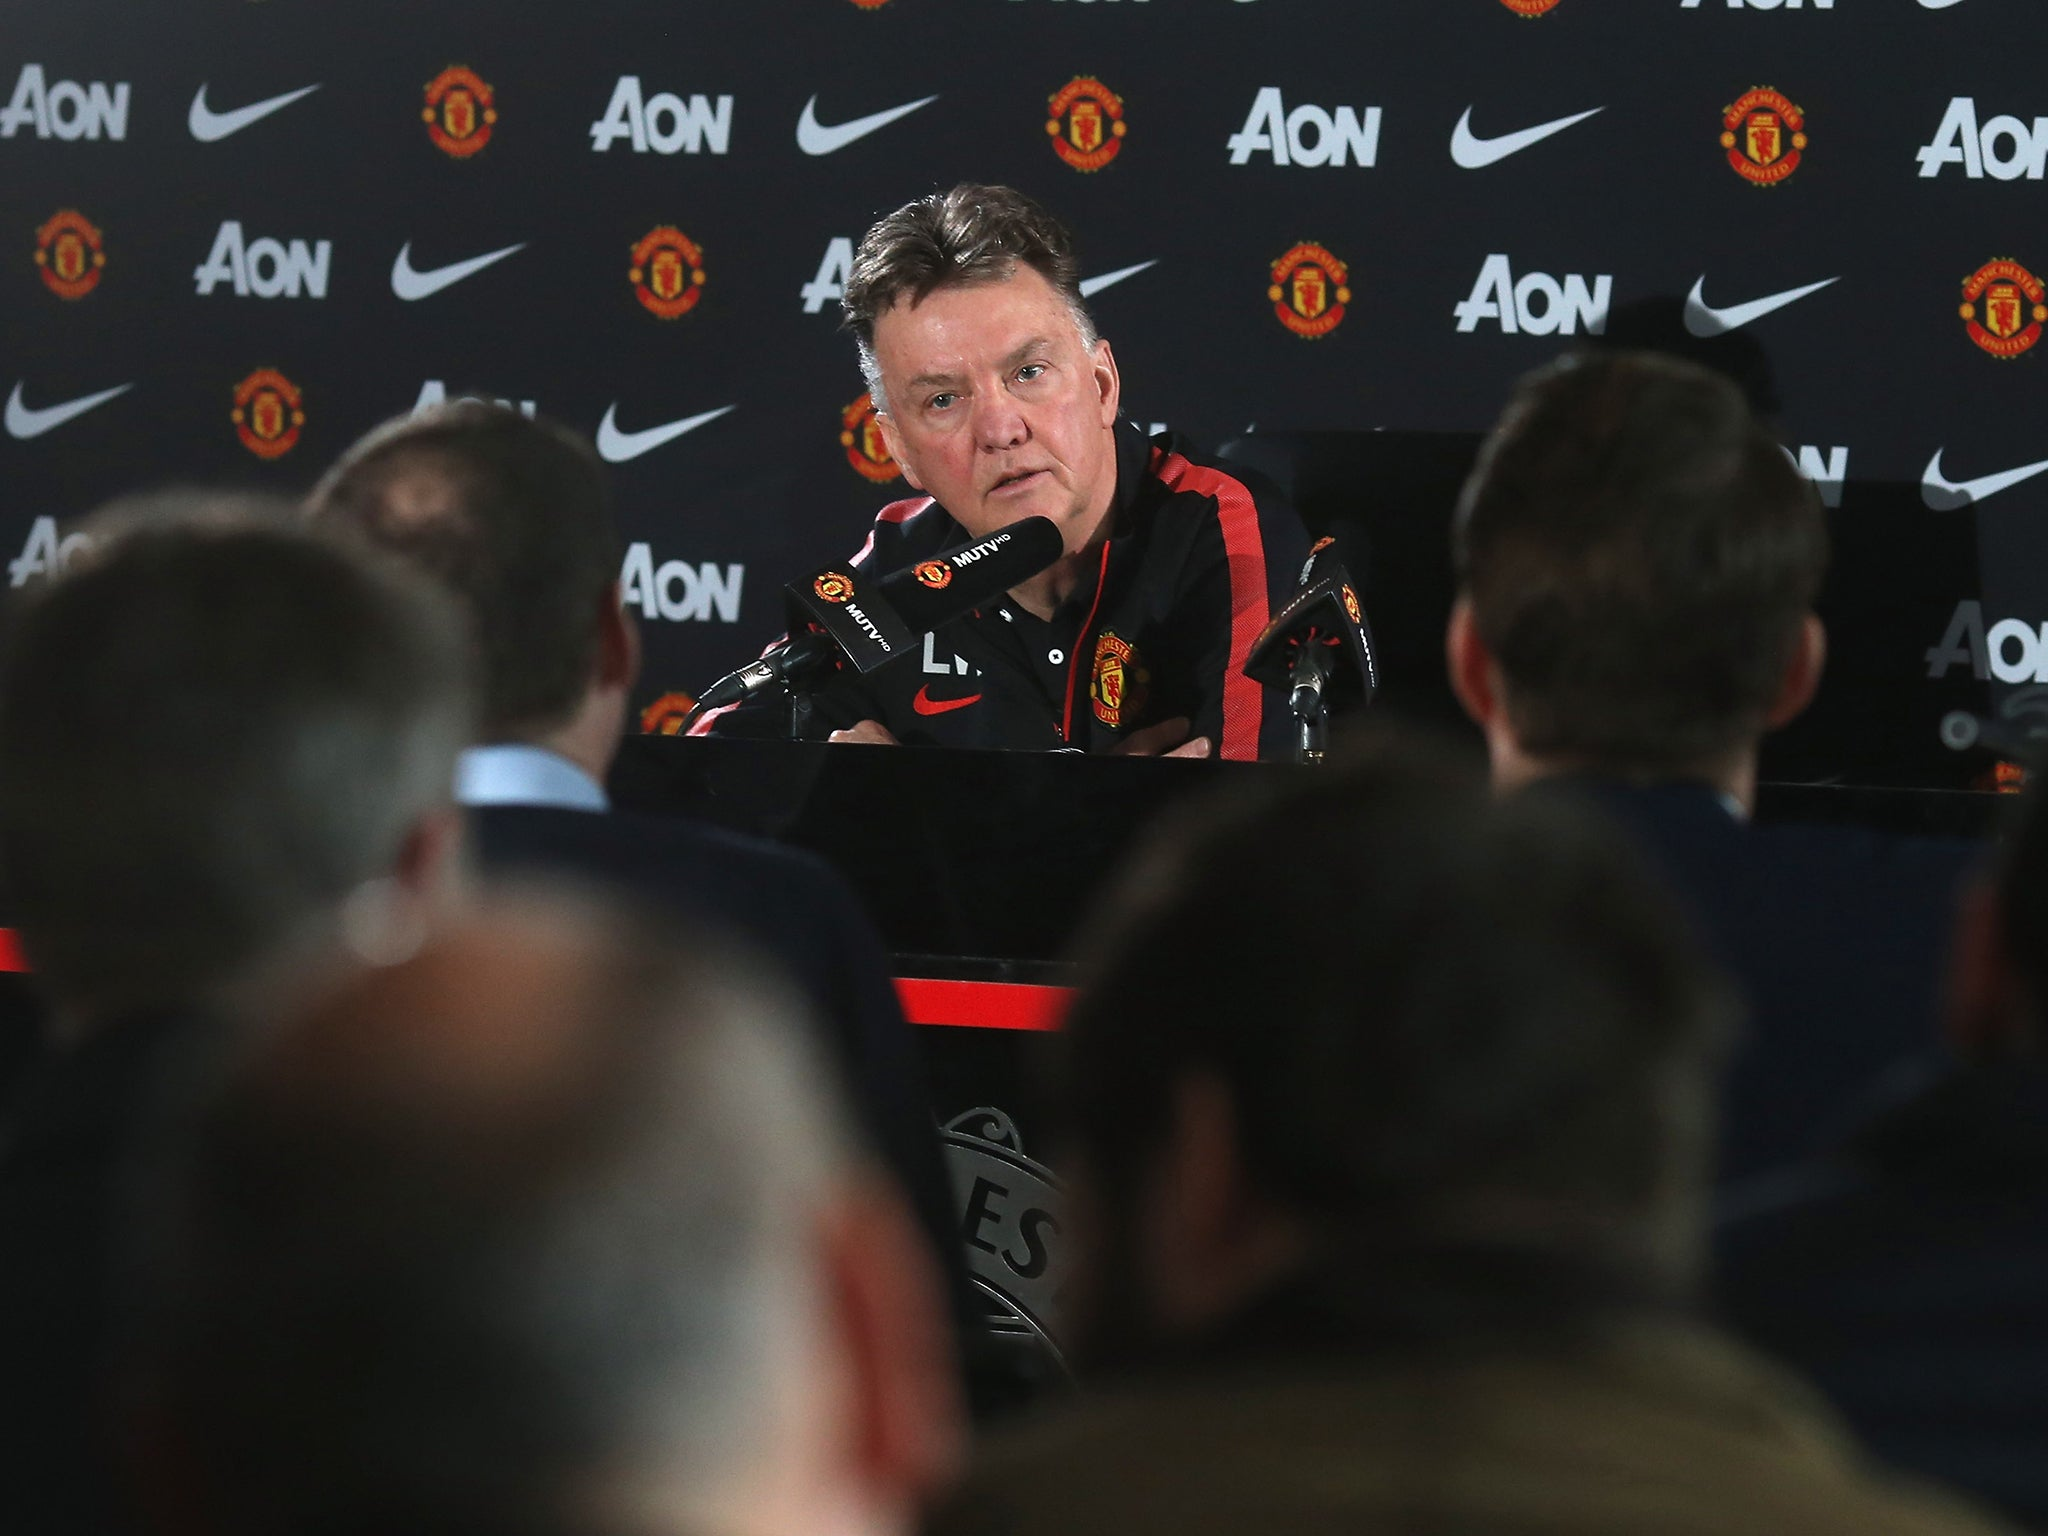 Louis van Gaal: A 10 point plan to a Manchester United recovery, including learning English and building the team around Angel Di Maria